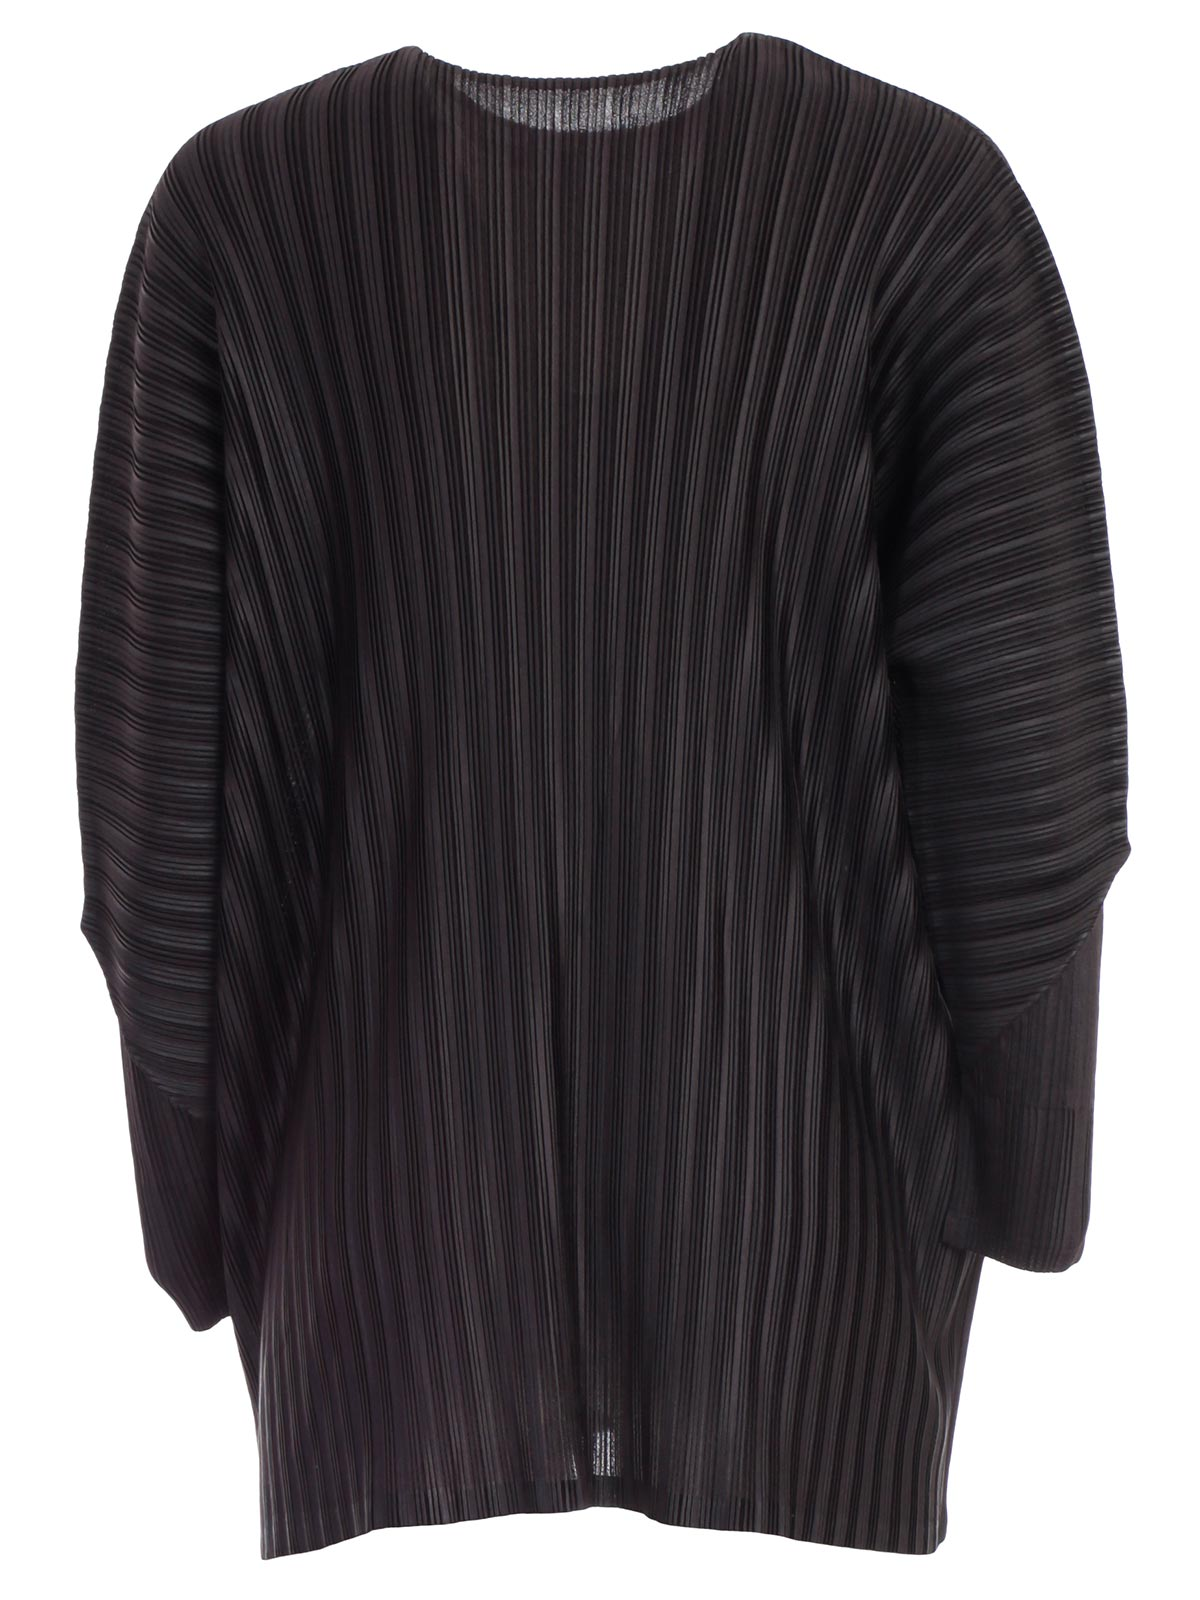 Picture of Pleats Please By Issey Miyake Shirt